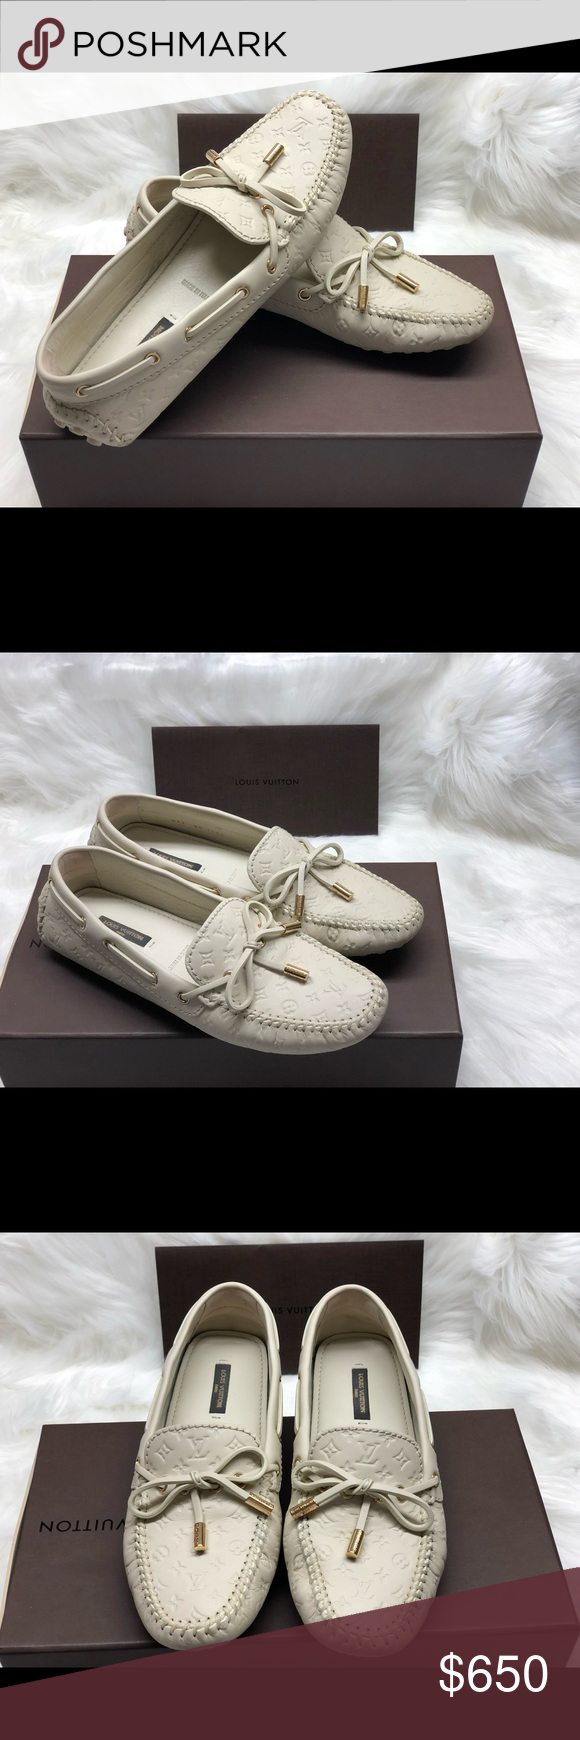 2ad5c1a0a465 ⭐️Louis Vuitton Gloria Flat Loafer ⭐️GLORIA FLAT LOAFER IN WHITE. ⭐️This  elegant